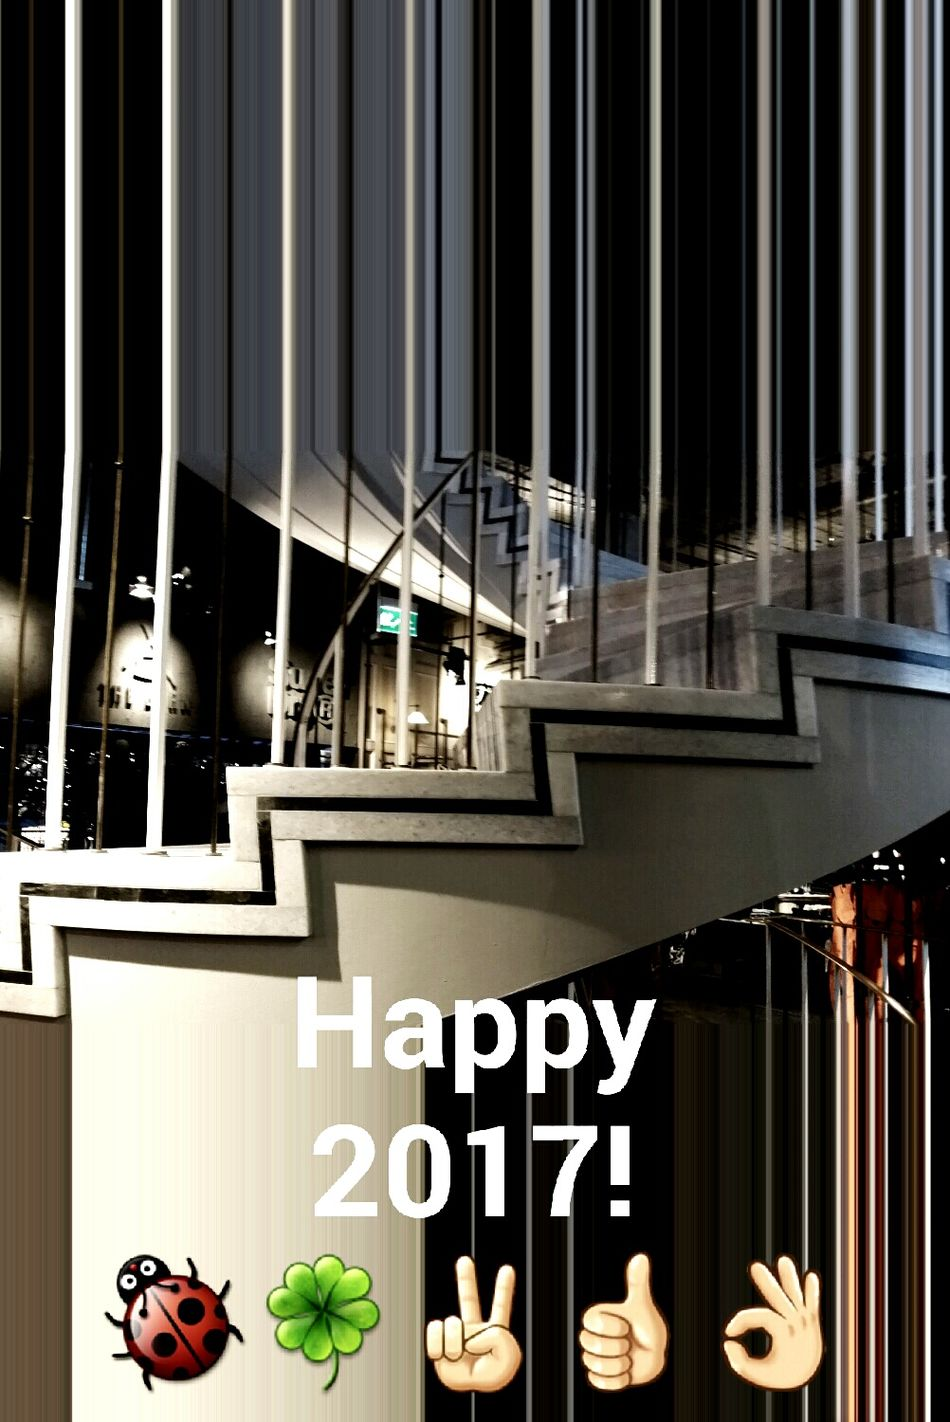 We wish you a peaceful & happy 2017! NewYear2017 Stairs Staircase Stairway To Heaven Steps And Staircases Up And Down Indoors No People Text Full Of Imagination  Treppen Stairs Escaleras Geometric Shapes Smgtreppen EyeEm Masterclass Creativity Perspectives And Dimensions EyeEm Gallery First Eyeem Photo Eye4photography  Eye4photography  Mobilephotography Architecture Day